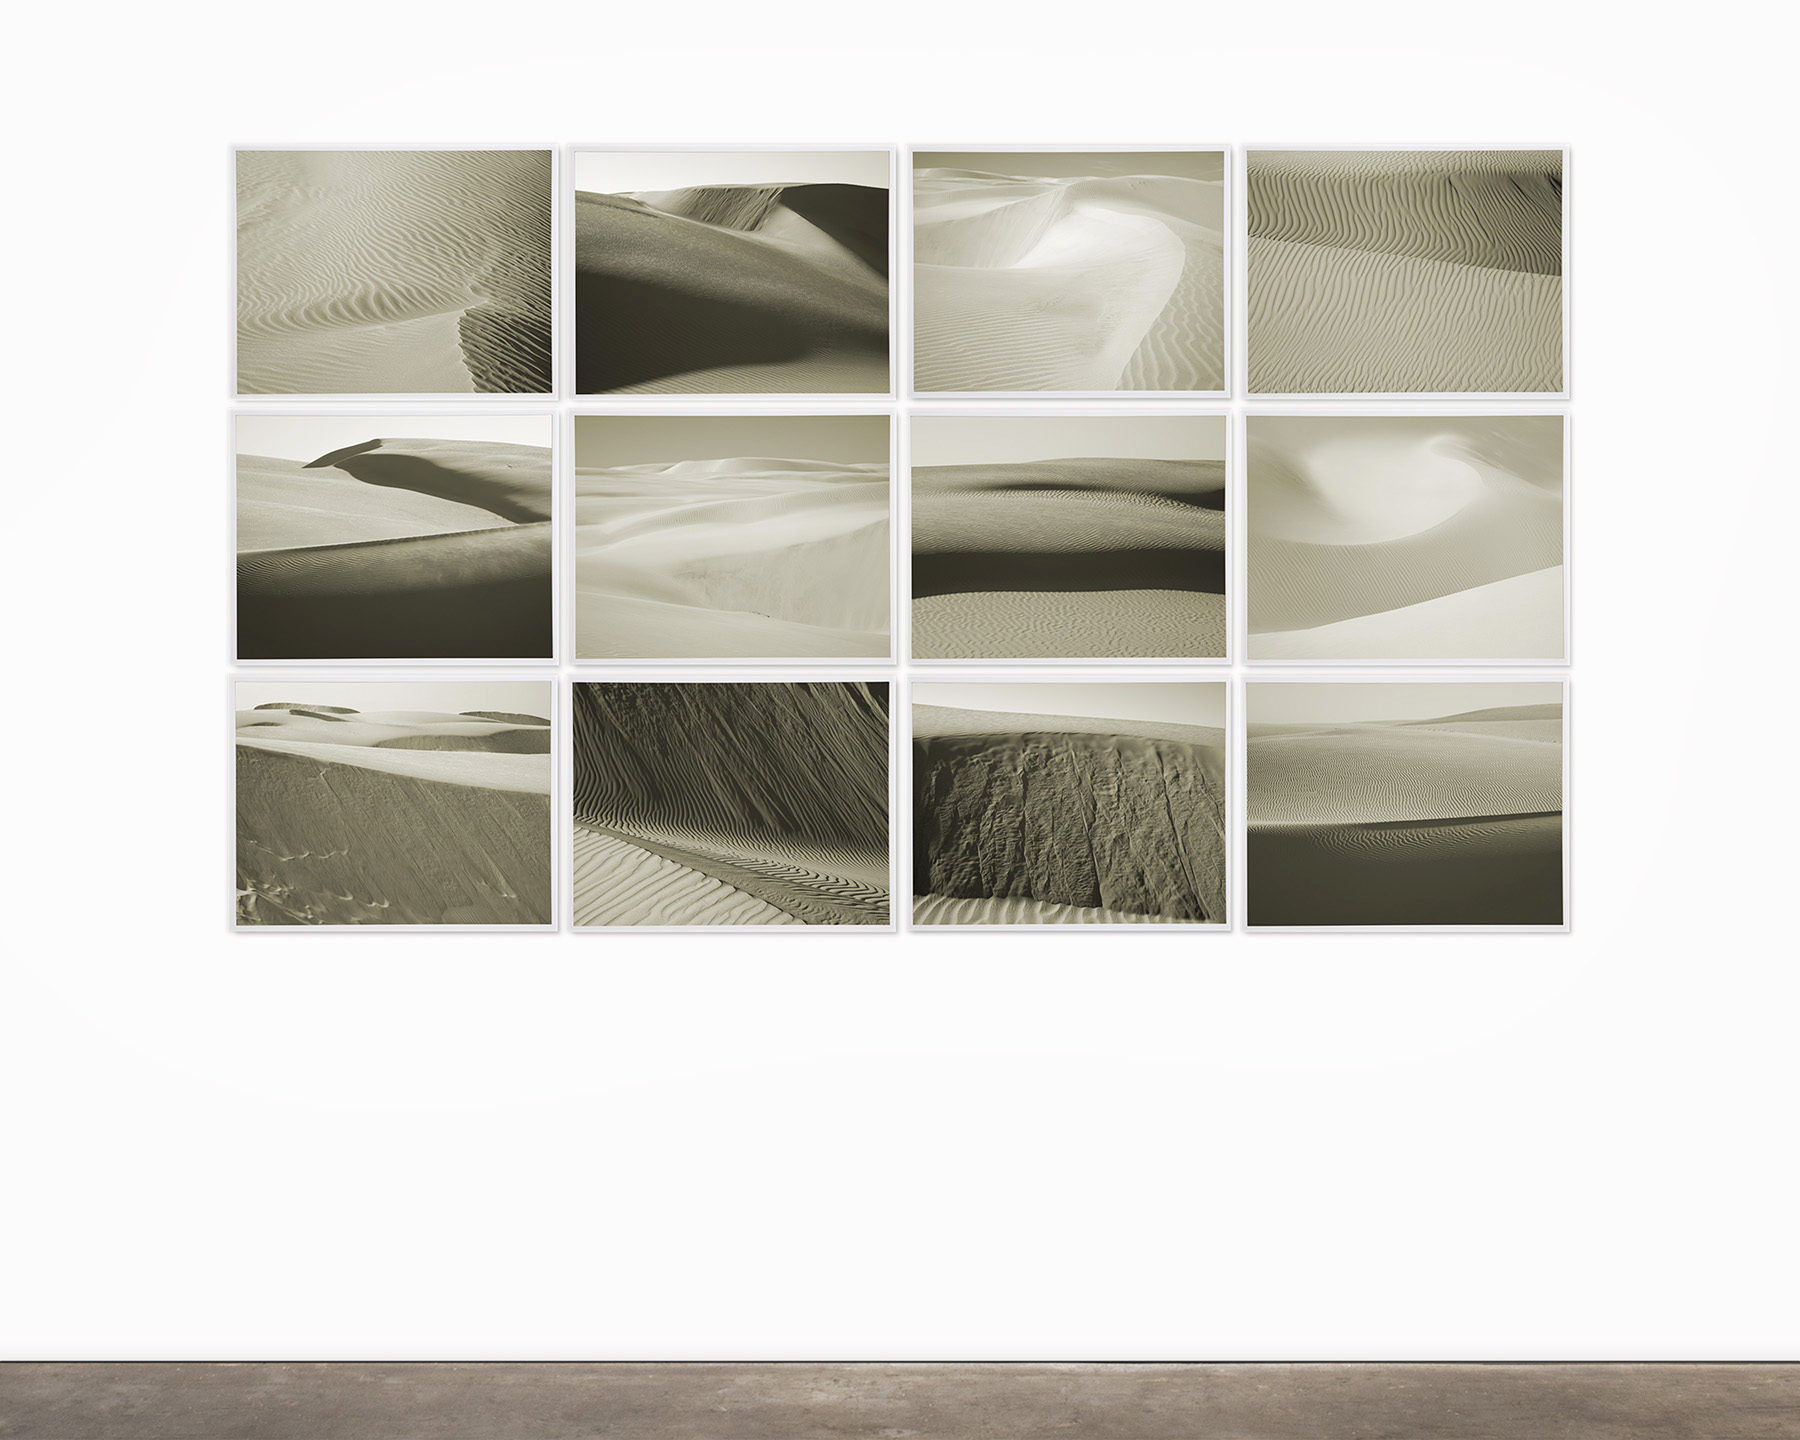 ray charles white ray charles white dune studies 2014 set of twelve carbon pigment prints